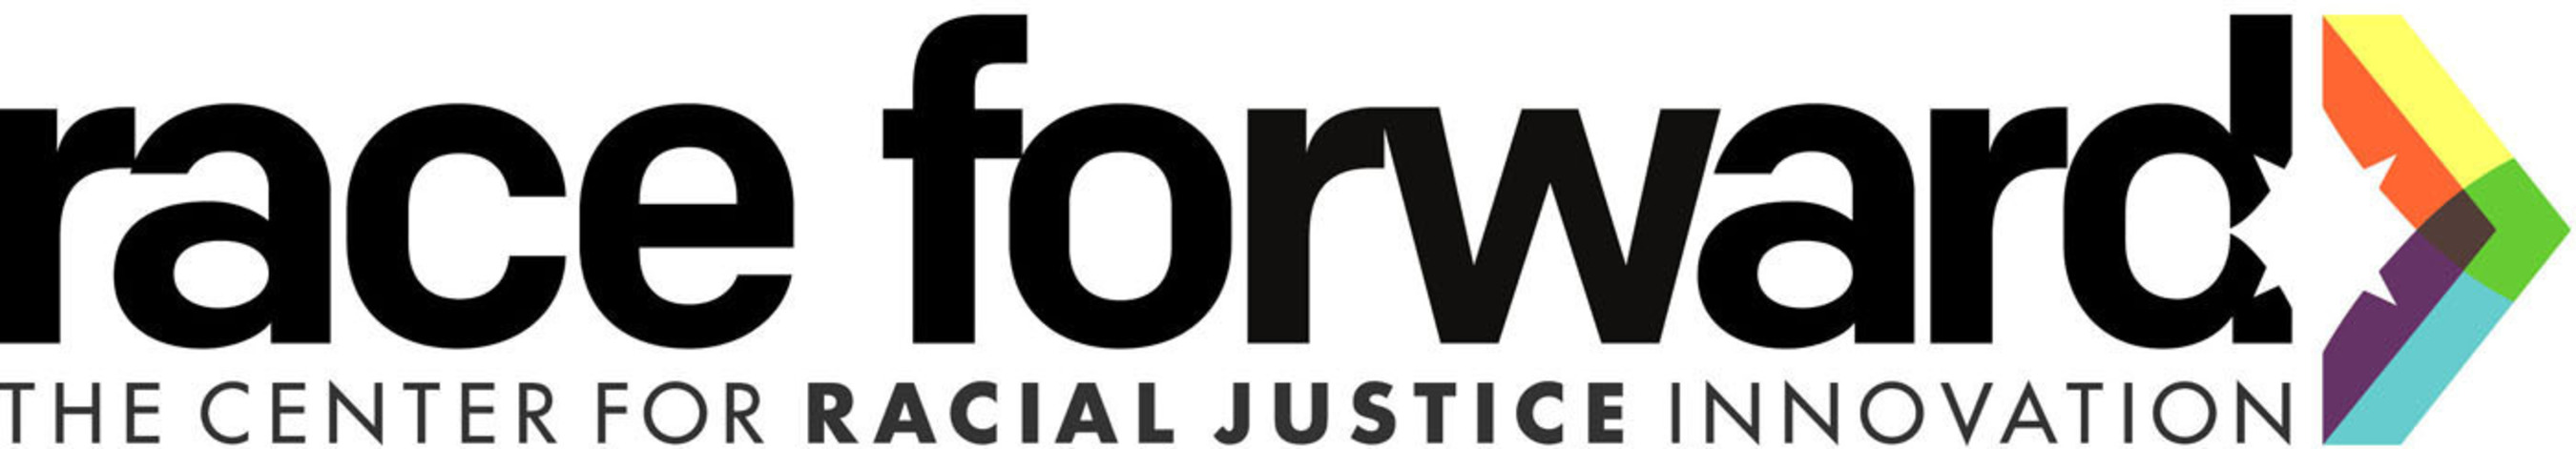 Race Forward: The Center for Racial Justice Innovation Logo.